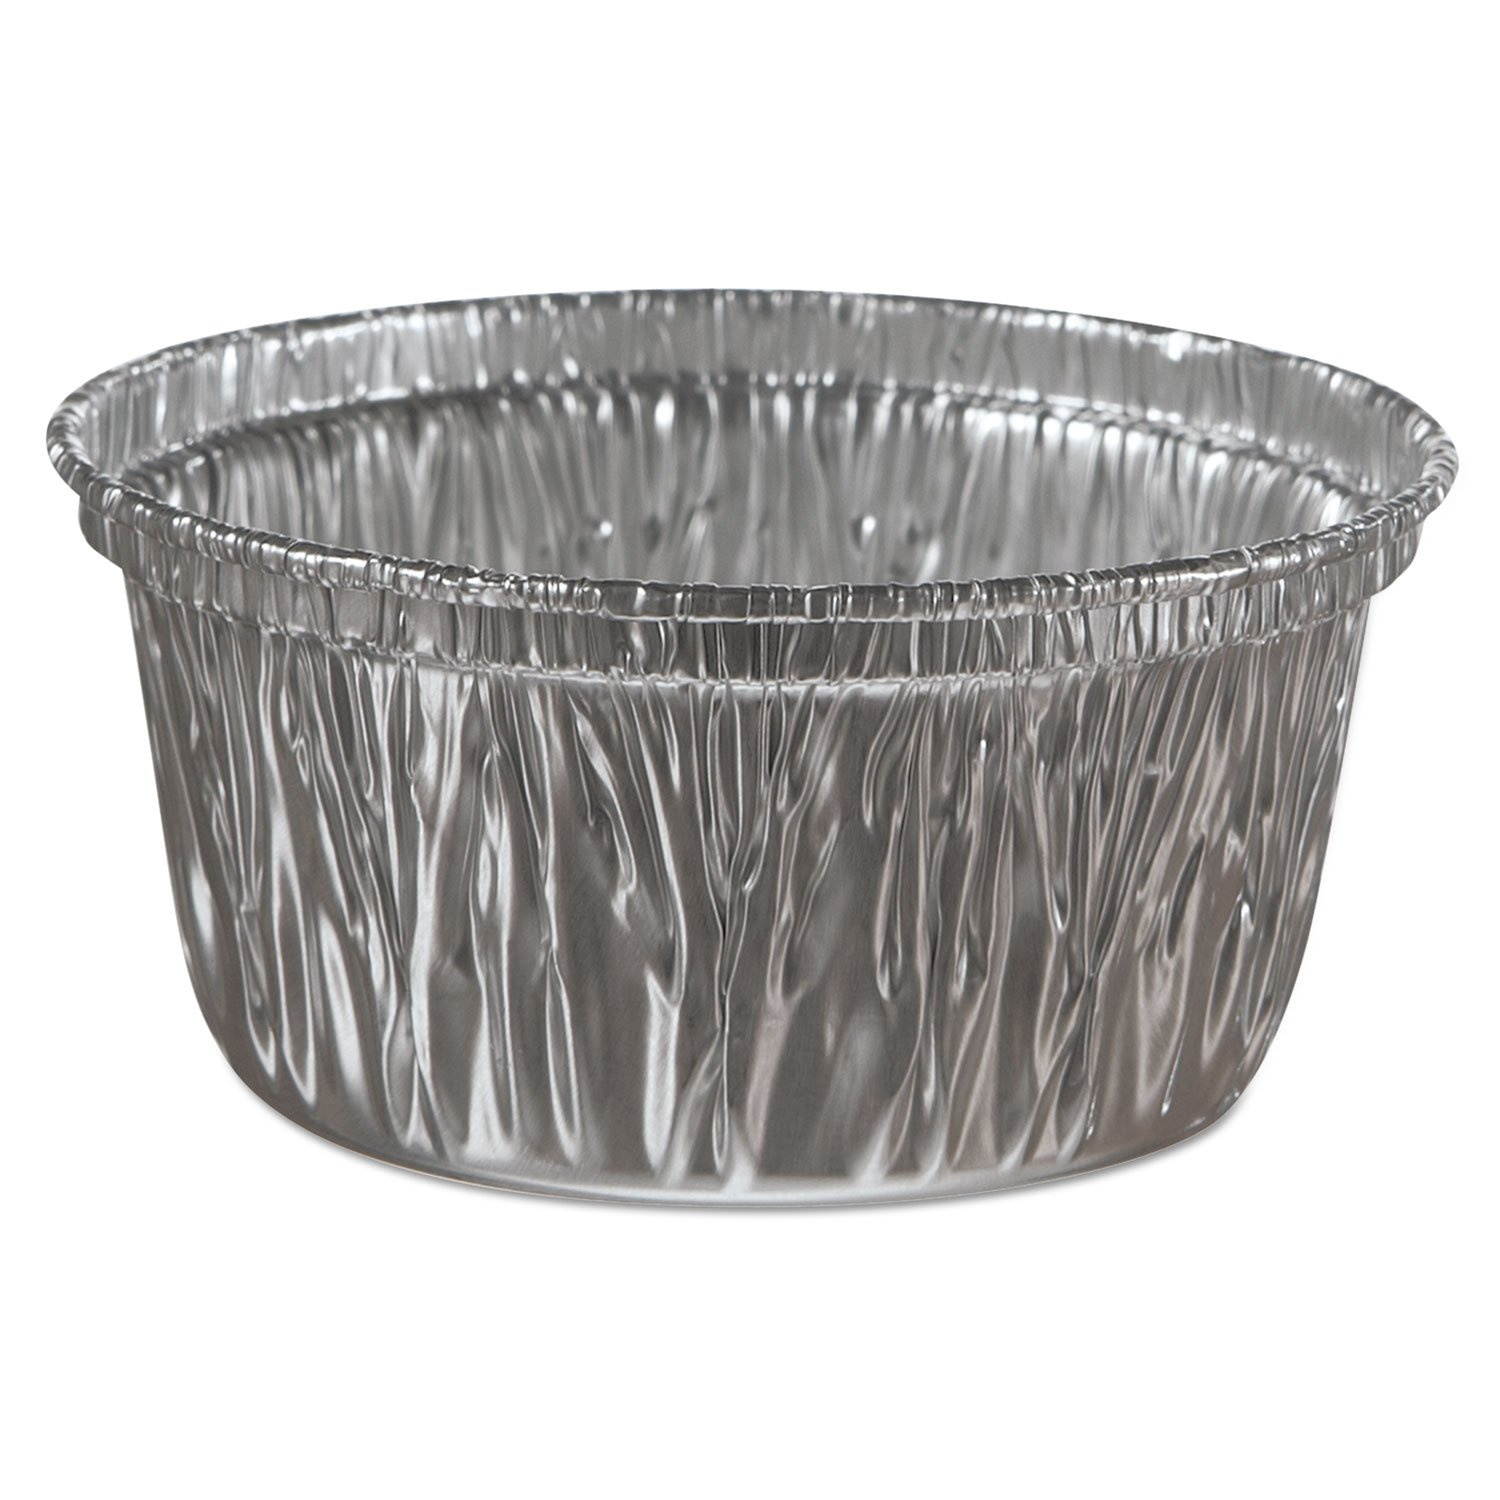 Aluminum Baking Cups, 4 Oz, 3 3/8 Dia X 1 9/16h By: Handi-Foil of America by Office Realm